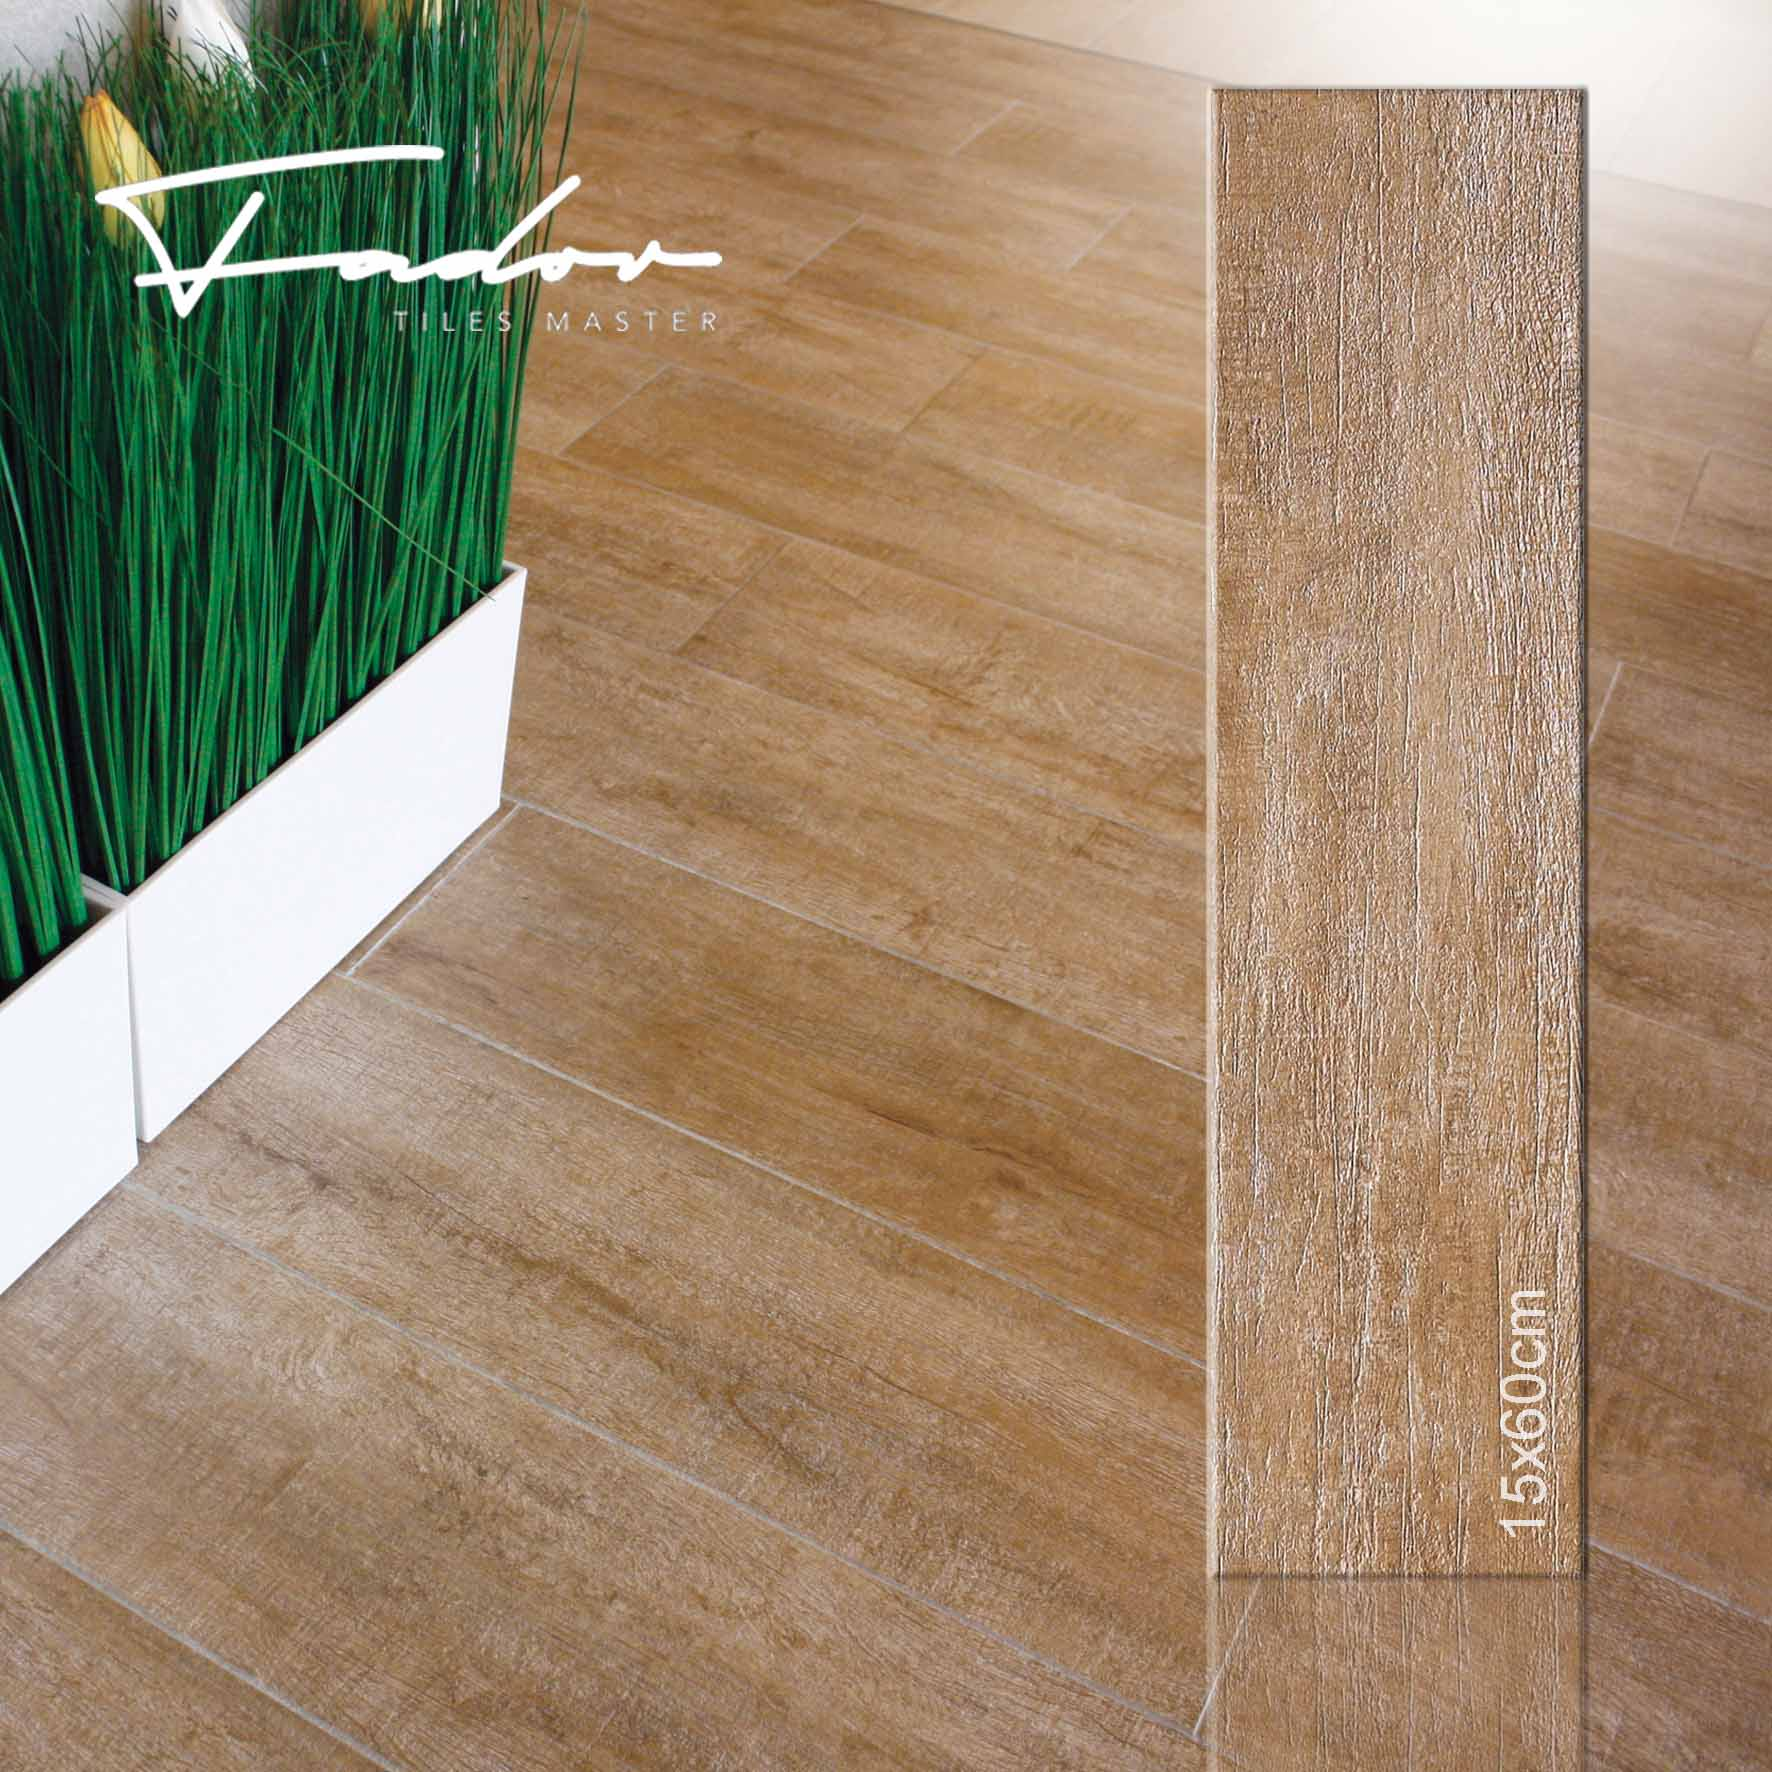 Fandor floor porcelain wooden tiles 15X60cm